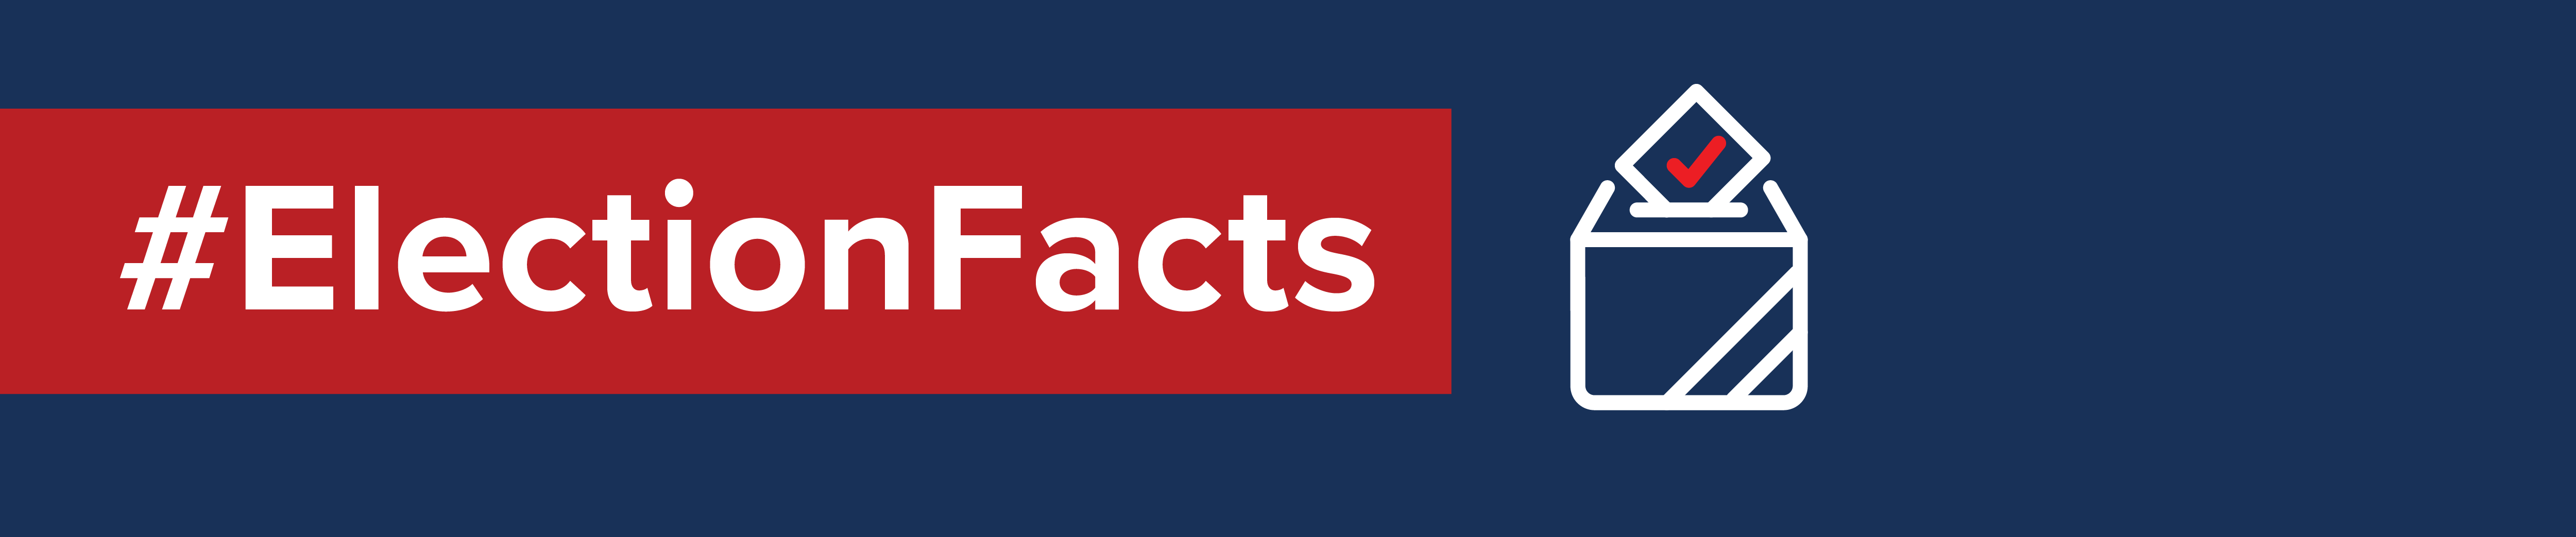 header for election facts toolkit